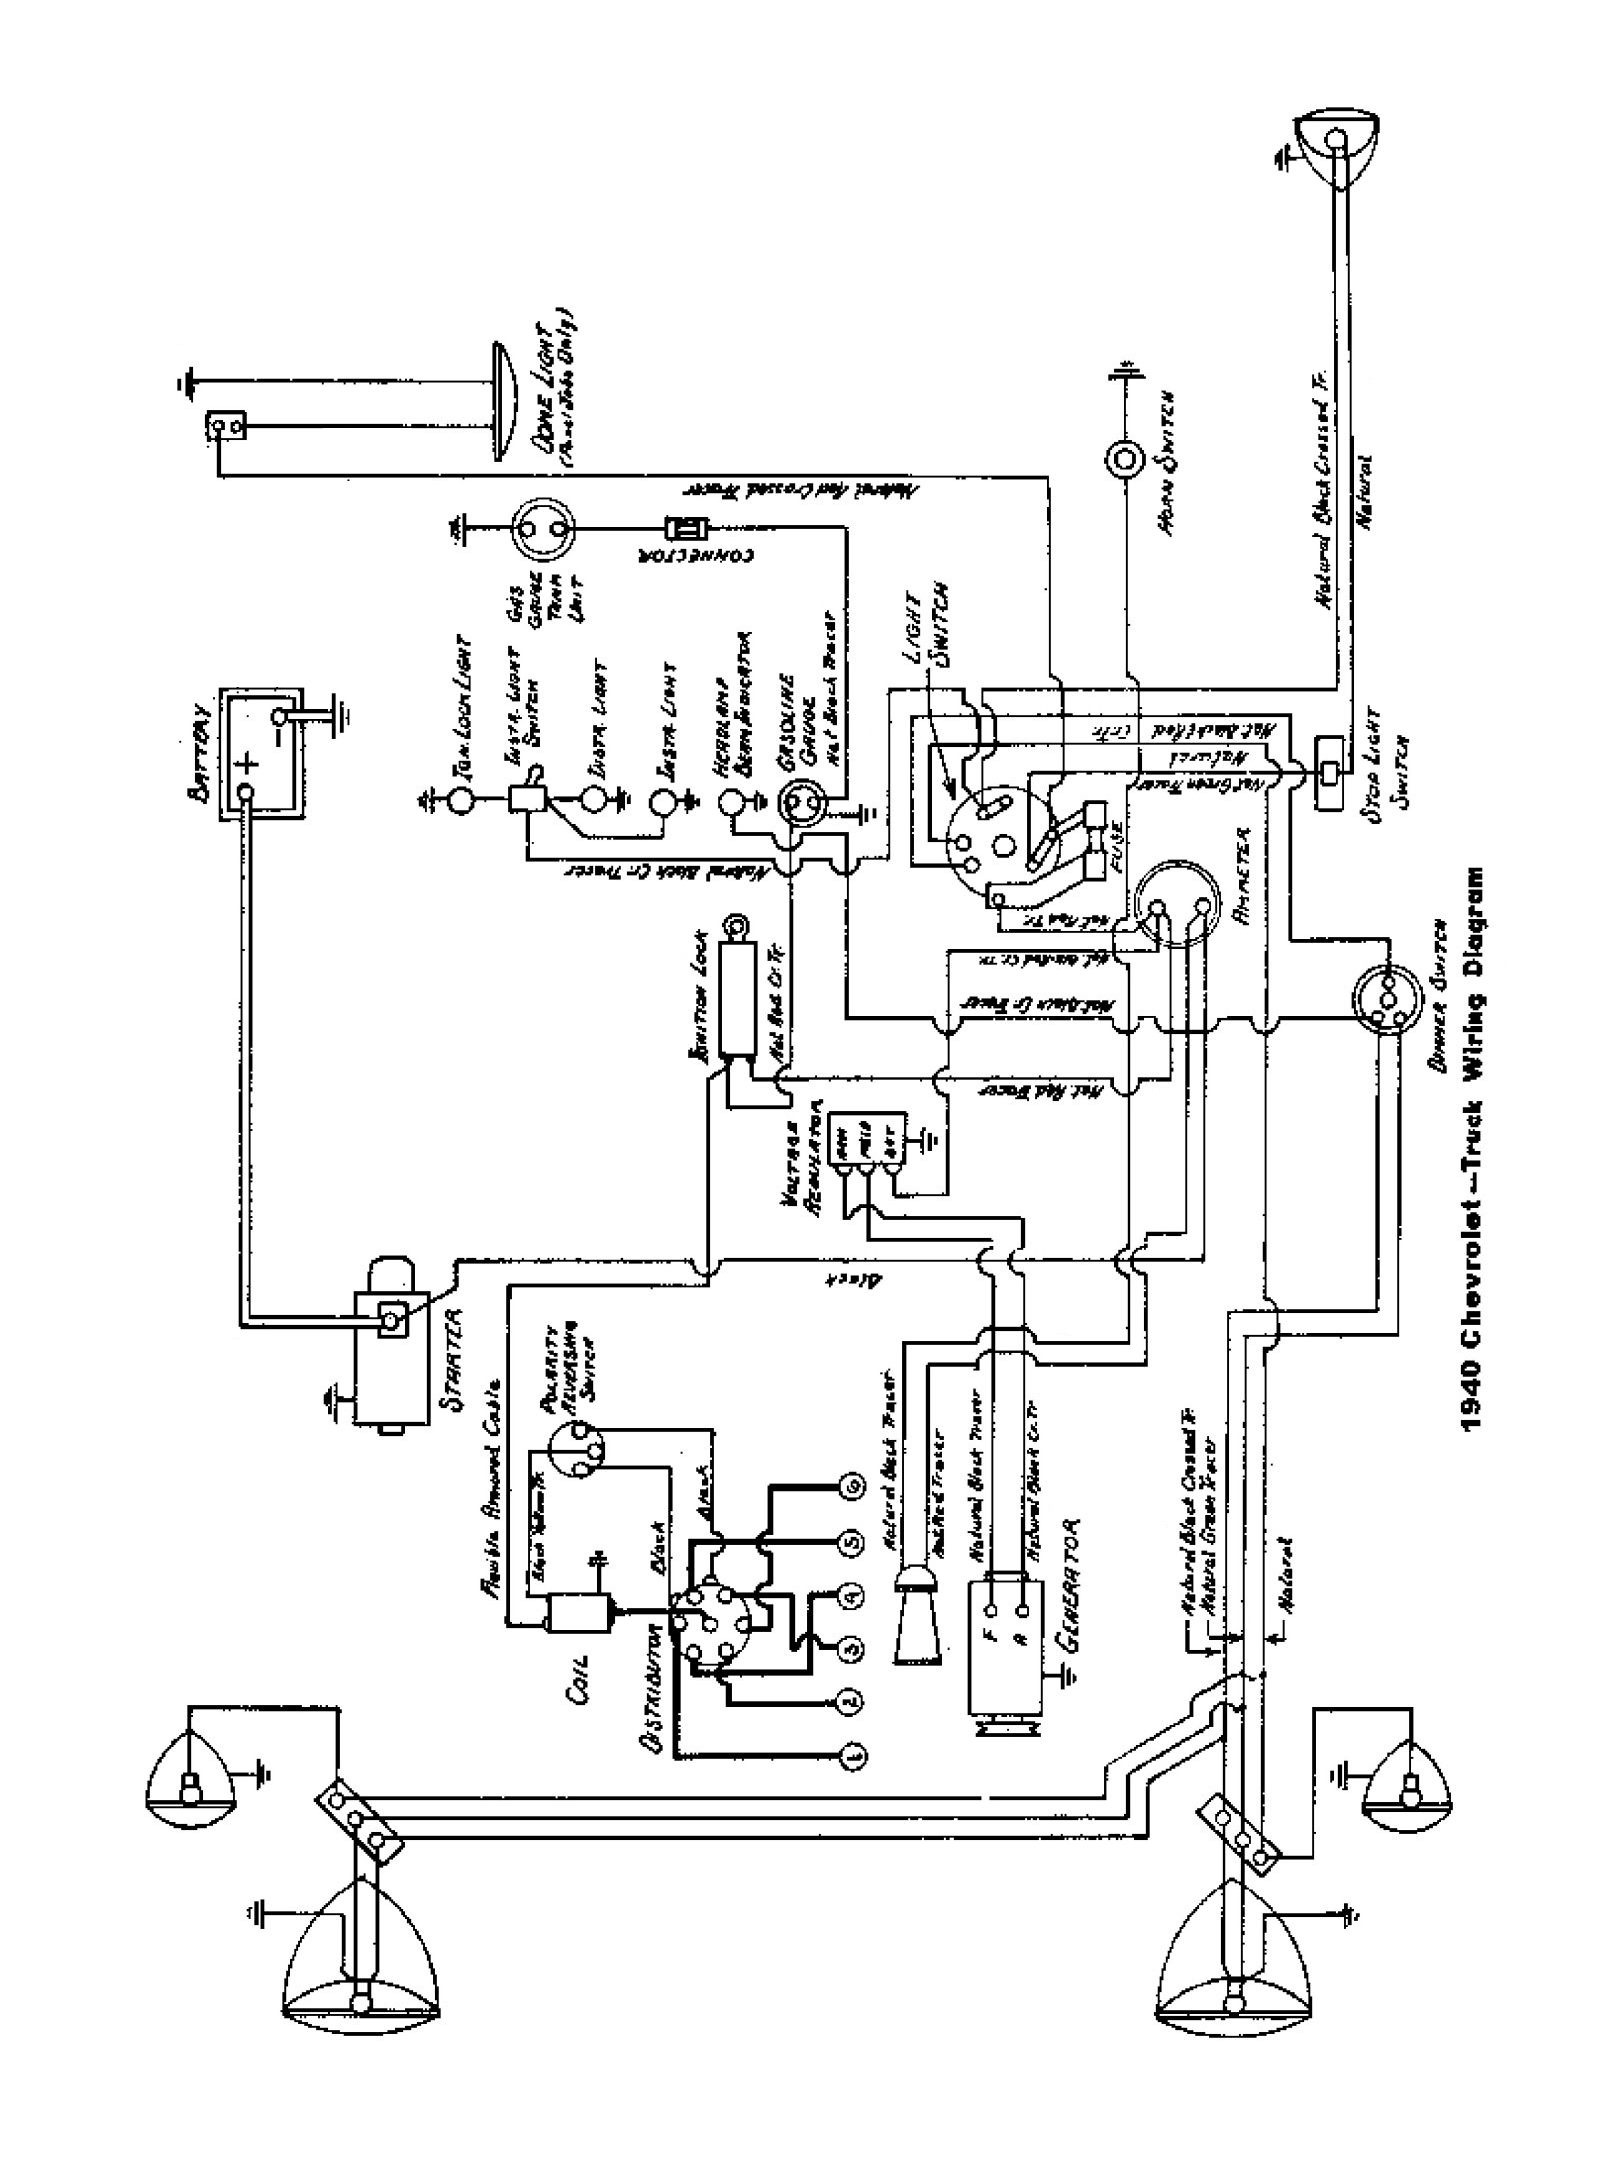 wiring diagram for car fuel gauge with Wiring on Wiring Hot Rod Lights additionally 1978 Corvette Fuse Panel Diagram also Toyota Mr2 Wiring Diagram together with 3cb9y Fuel Reset Button Mercedes Class besides Wiring.